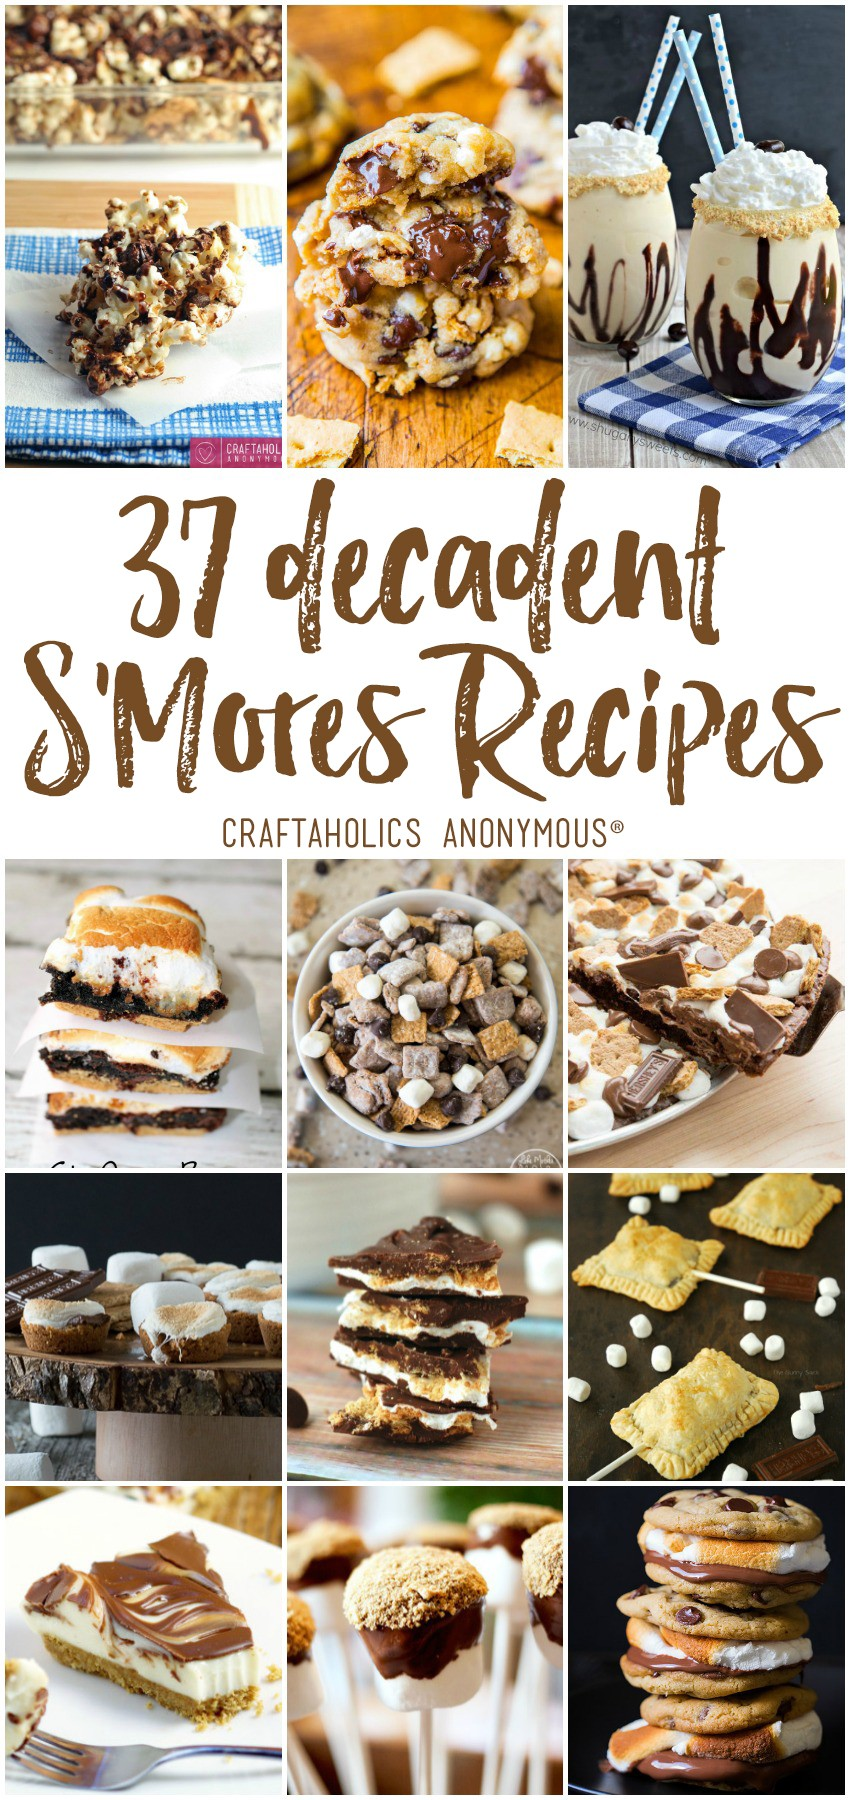 37 Decadent S'more Recipes for Summer - get your s'mores fix with one of these gooey, amazing recipes! Find them at craftaholicsanonymous.ne!